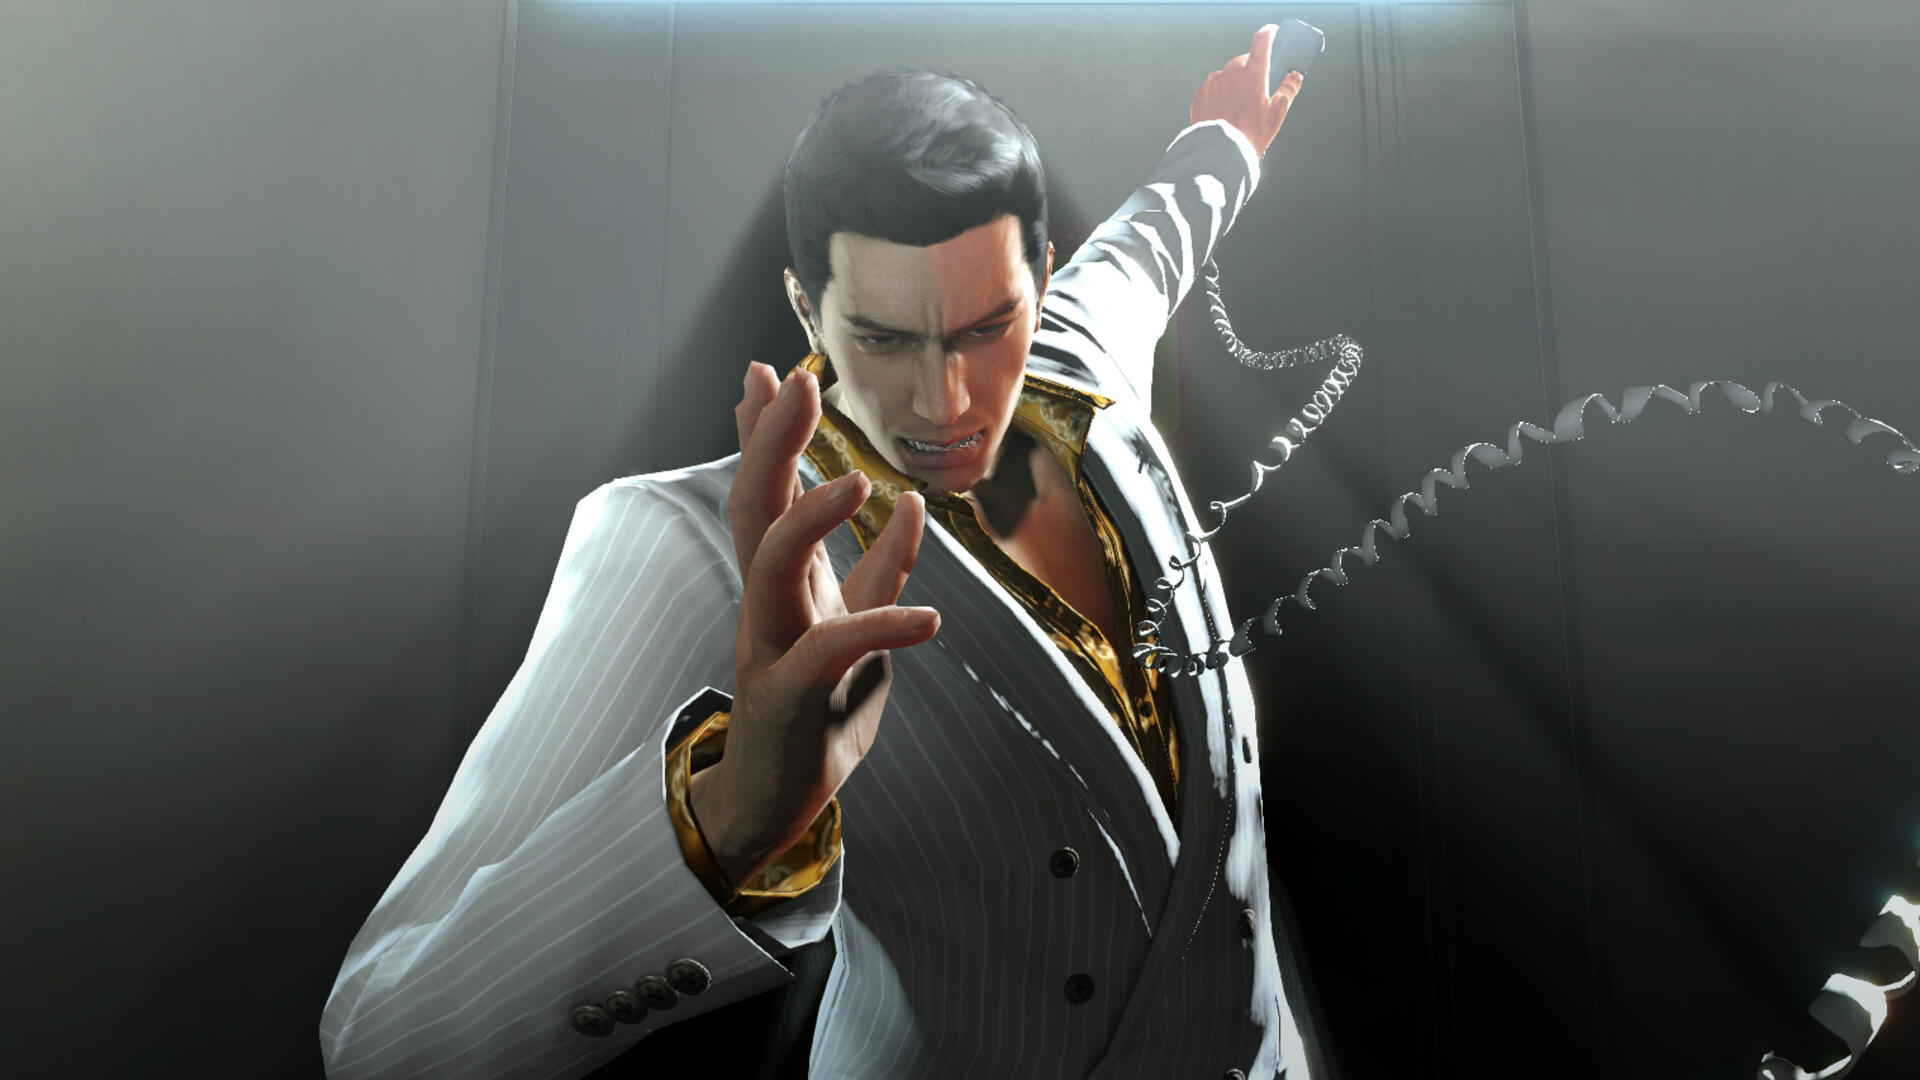 Strong Yakuza Sales Prompt Sega to Improve Localization for Simultaneous International Releases